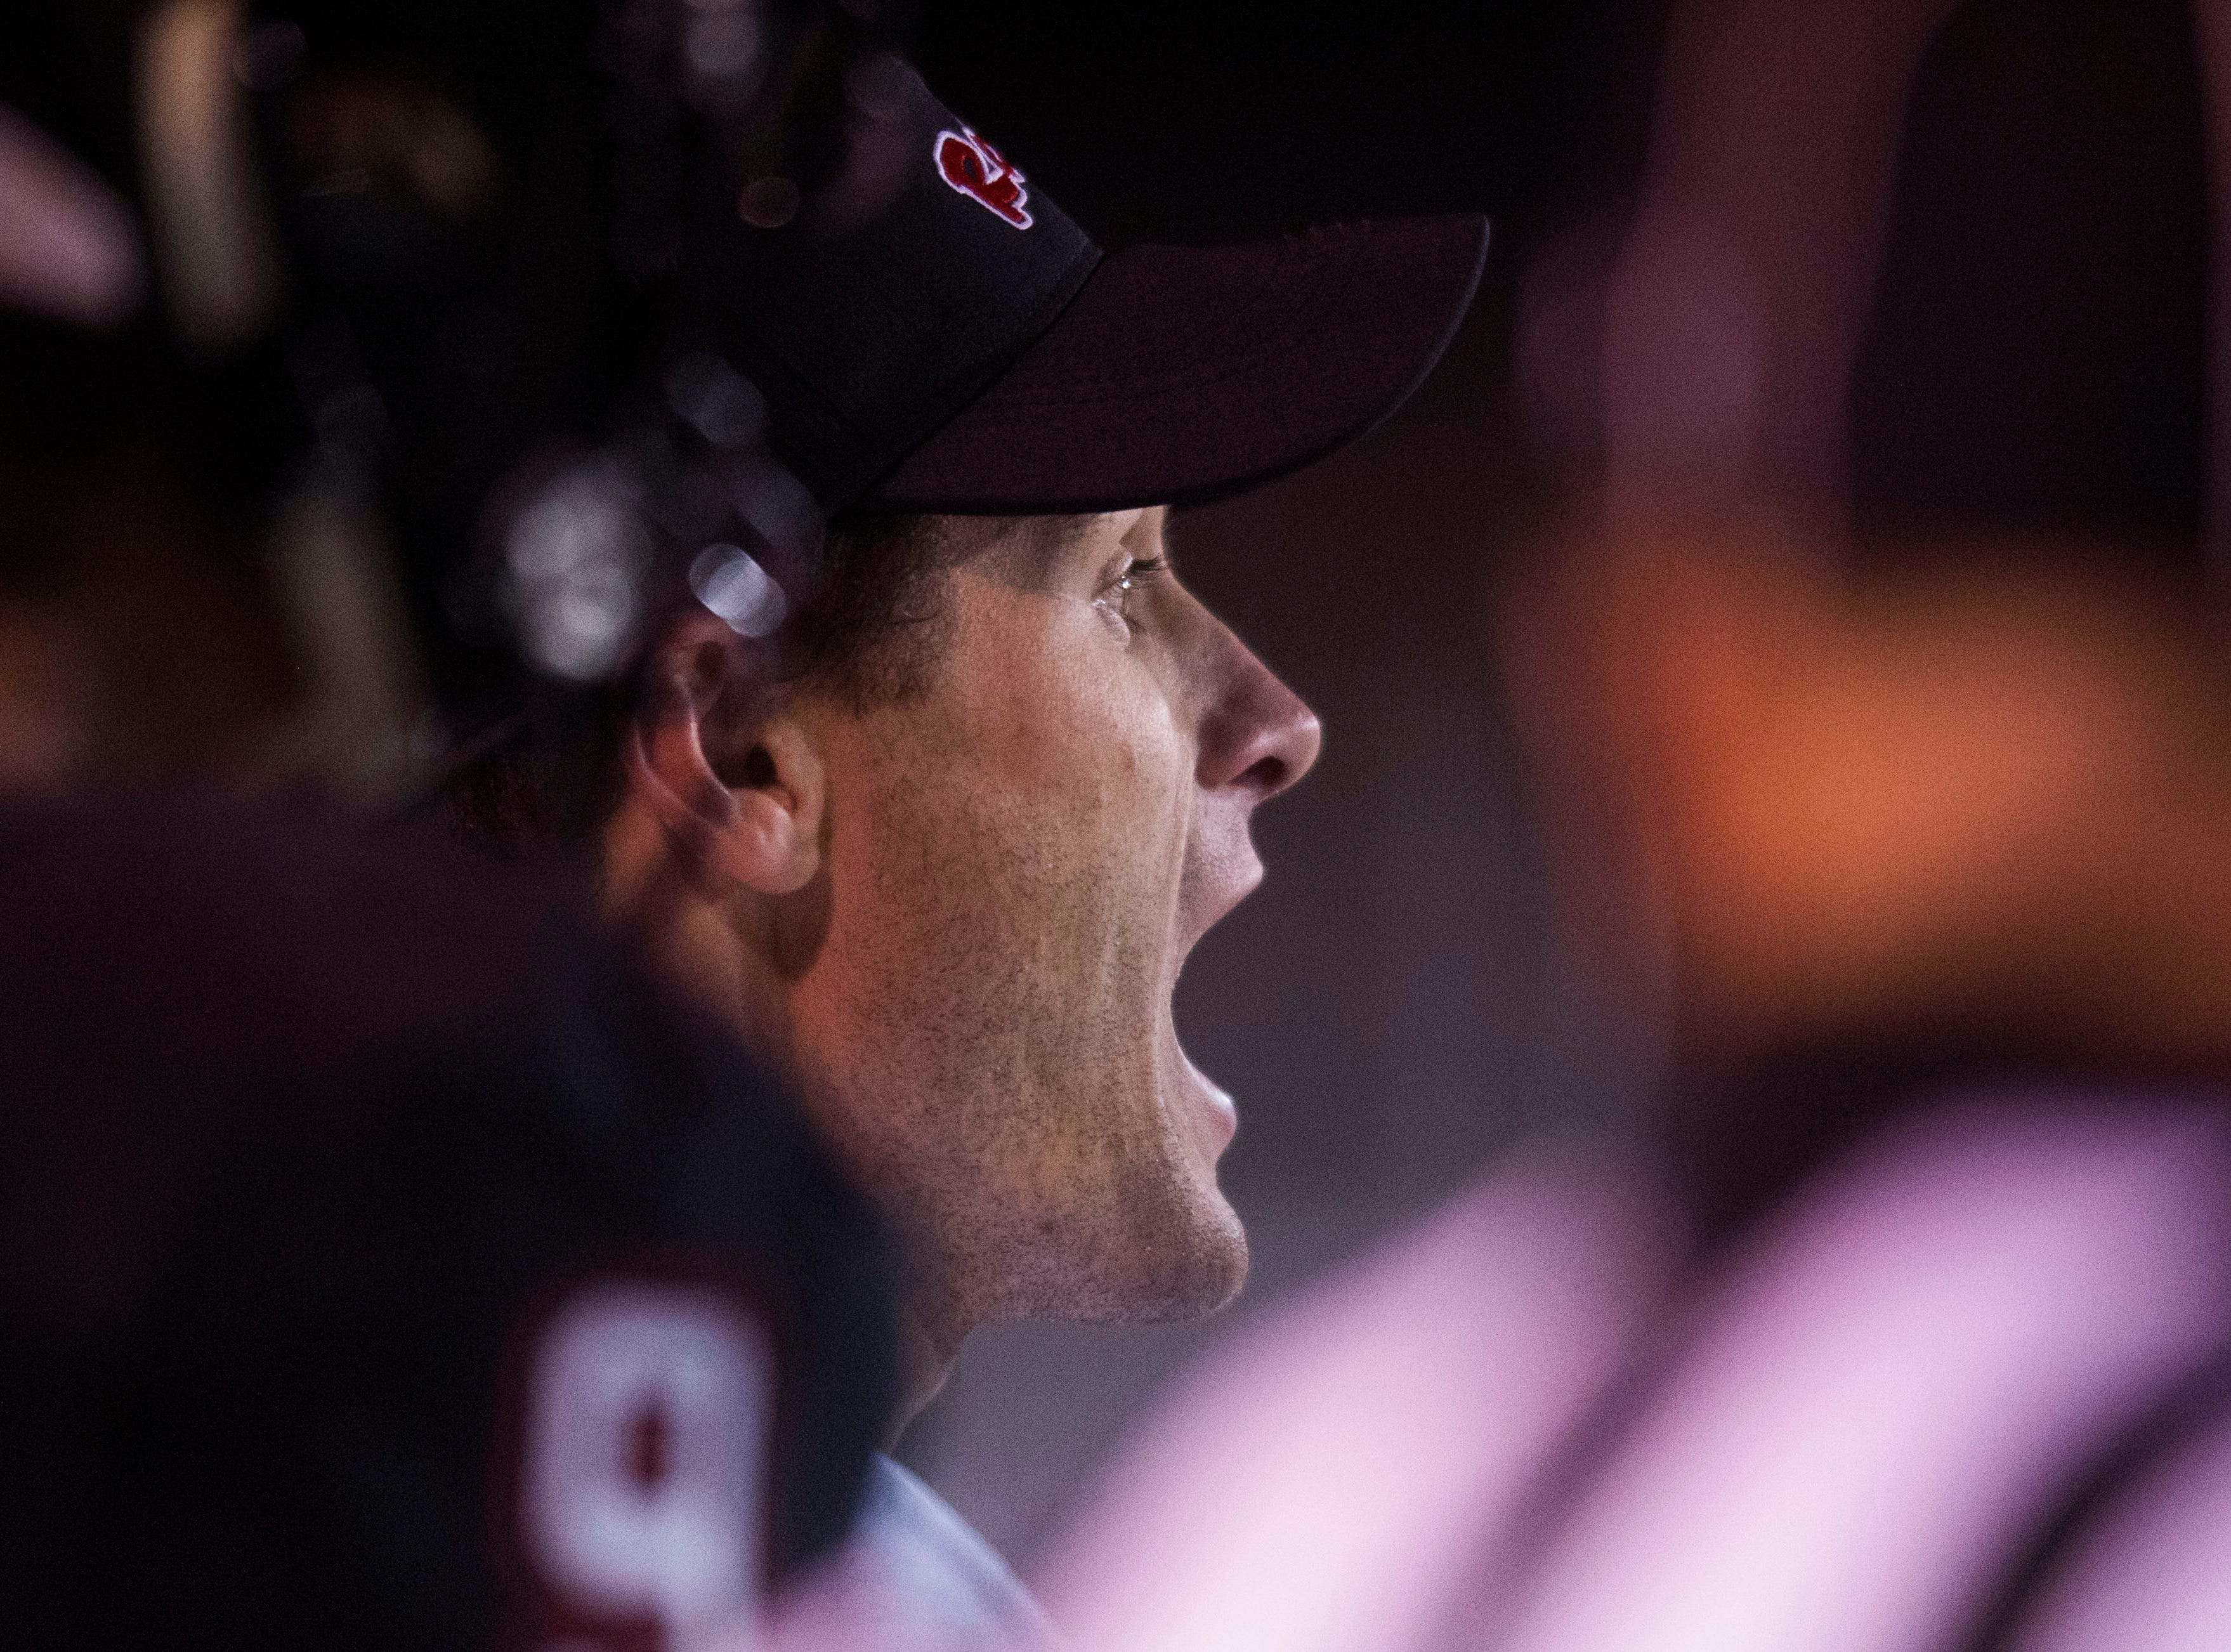 Maryville Head Coach Derek Hunt yells from the sidelines during a 6A quarterfinal game between Maryville and Farragut at Maryville Friday, Nov. 16, 2018. Maryville defeated Farragut 26-10.